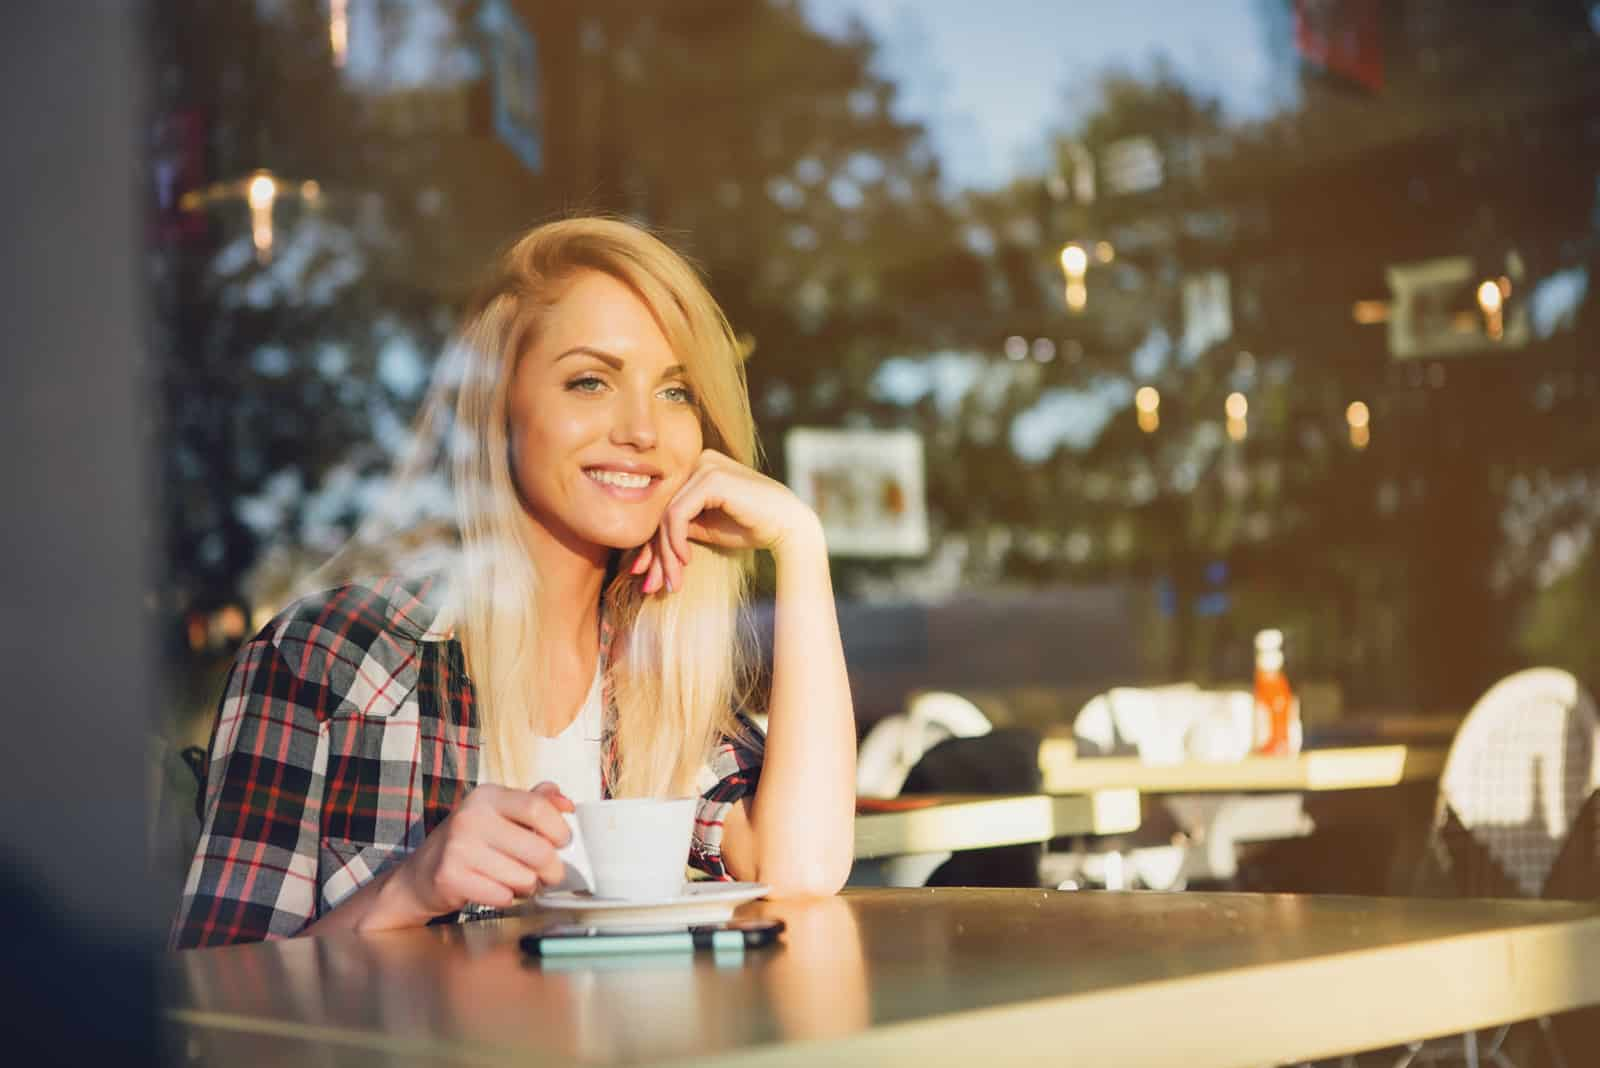 a smiling woman sits in a cafe and drinks coffee